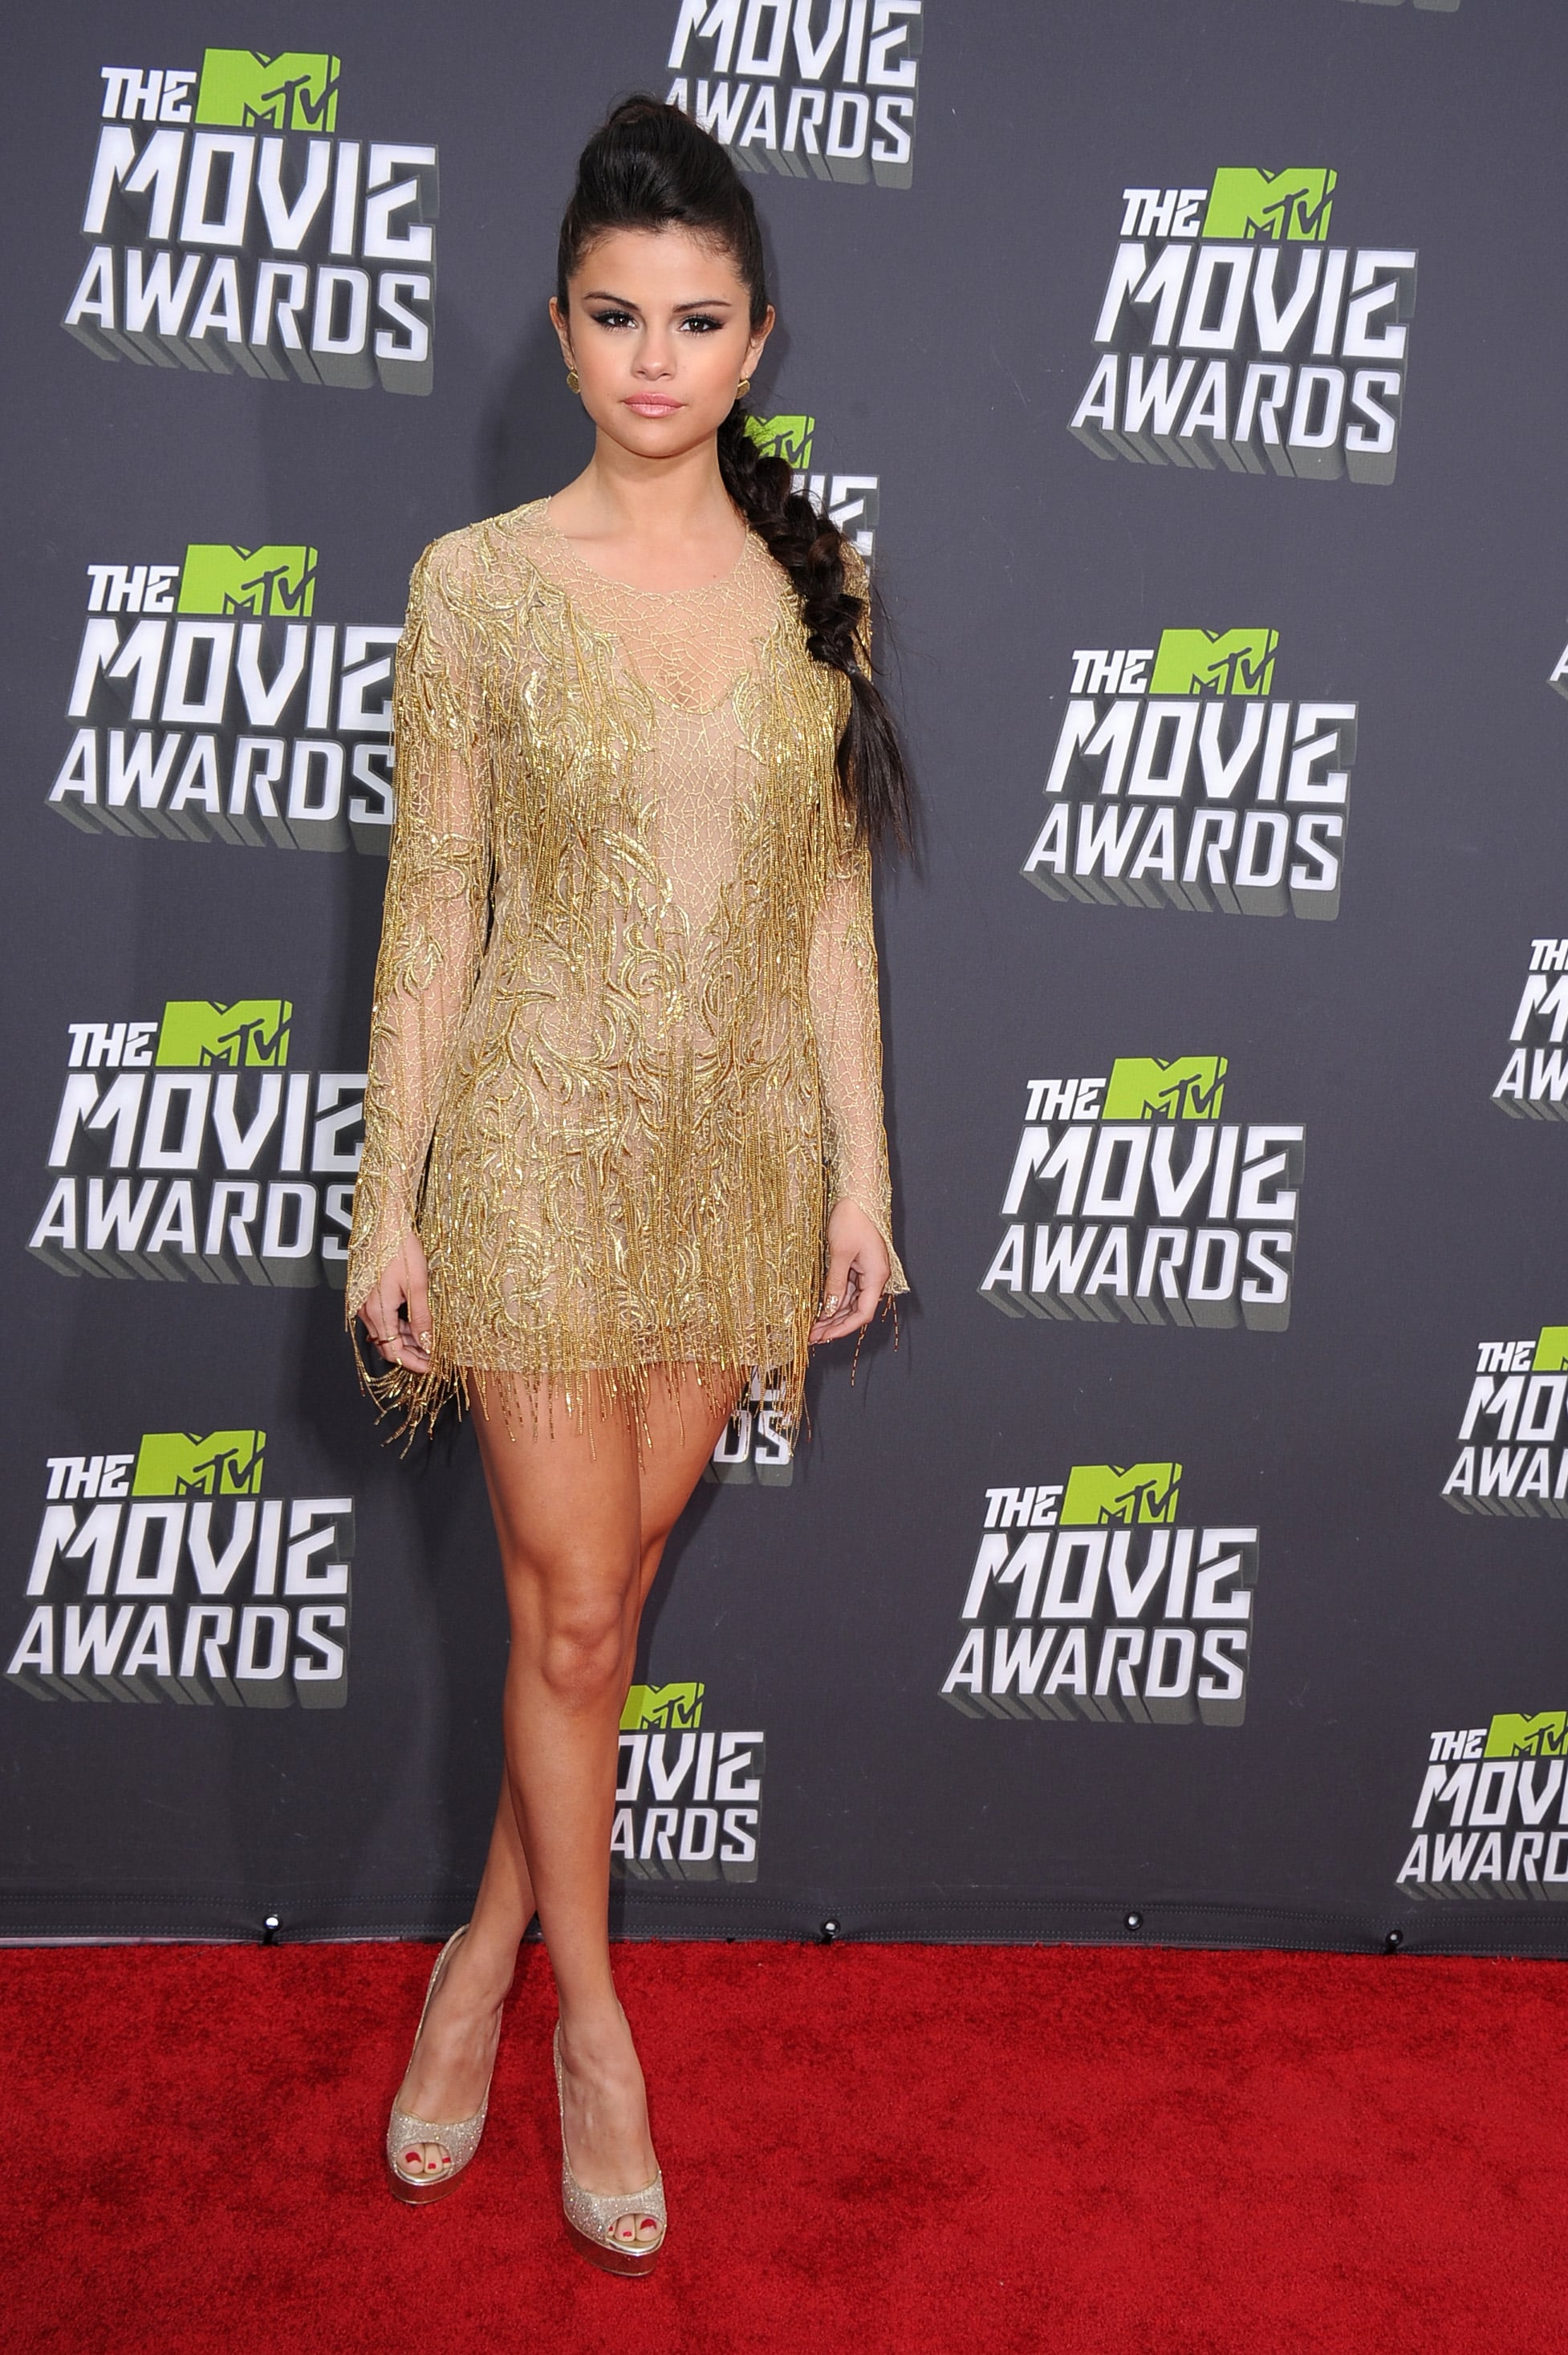 Selena Gomez struck gold in this Julien Macdonald fringed minidress at the 2013 MTV Movie Awards.